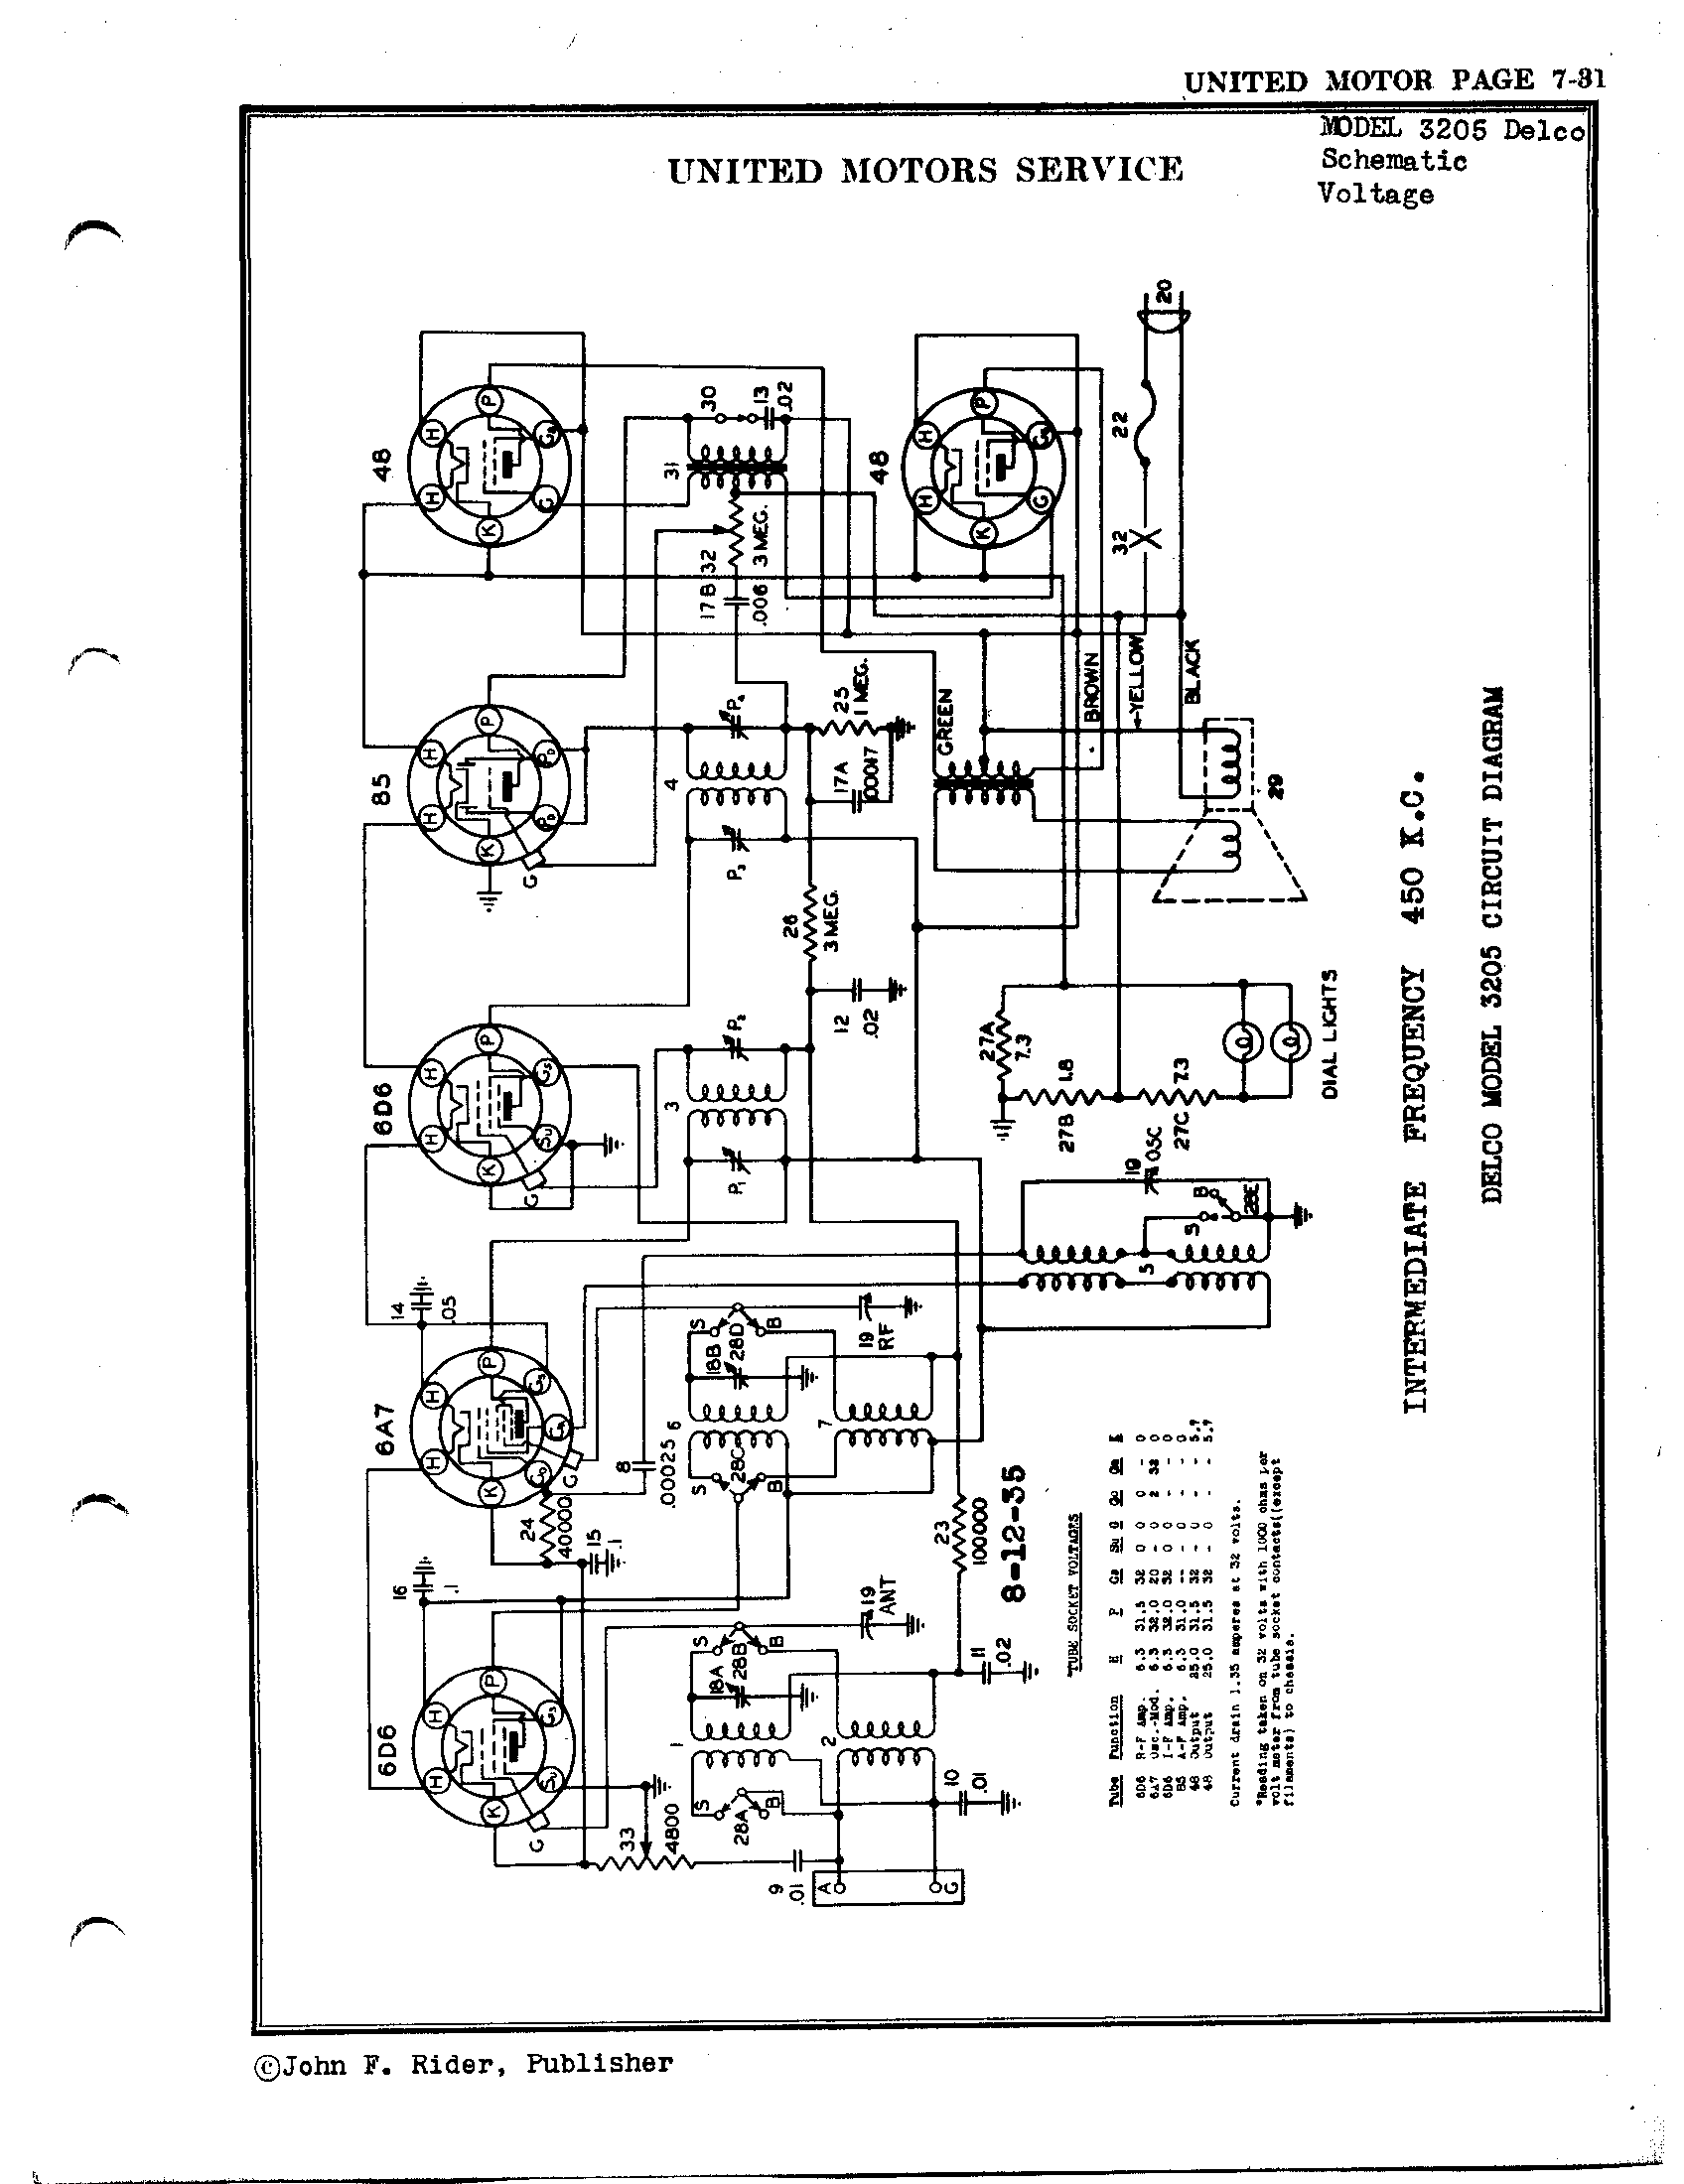 united motors service - delco 3205 delco | antique electronic supply gm delco radio wiring diagram 2004 delco radio wiring diagram circuit board #2